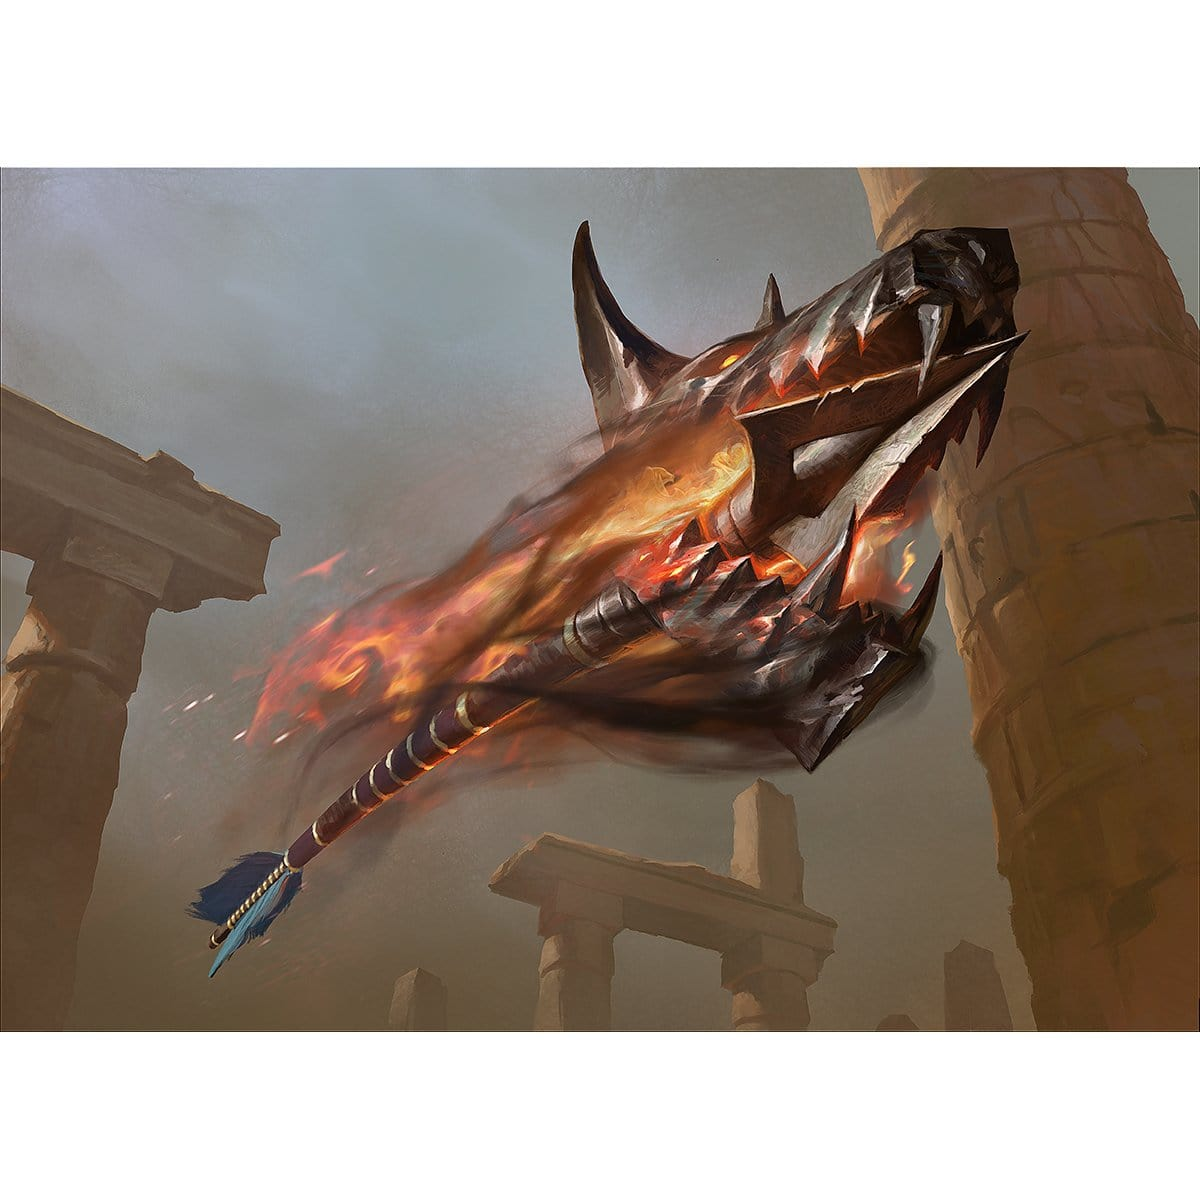 Open Fire Print - Print - Original Magic Art - Accessories for Magic the Gathering and other card games